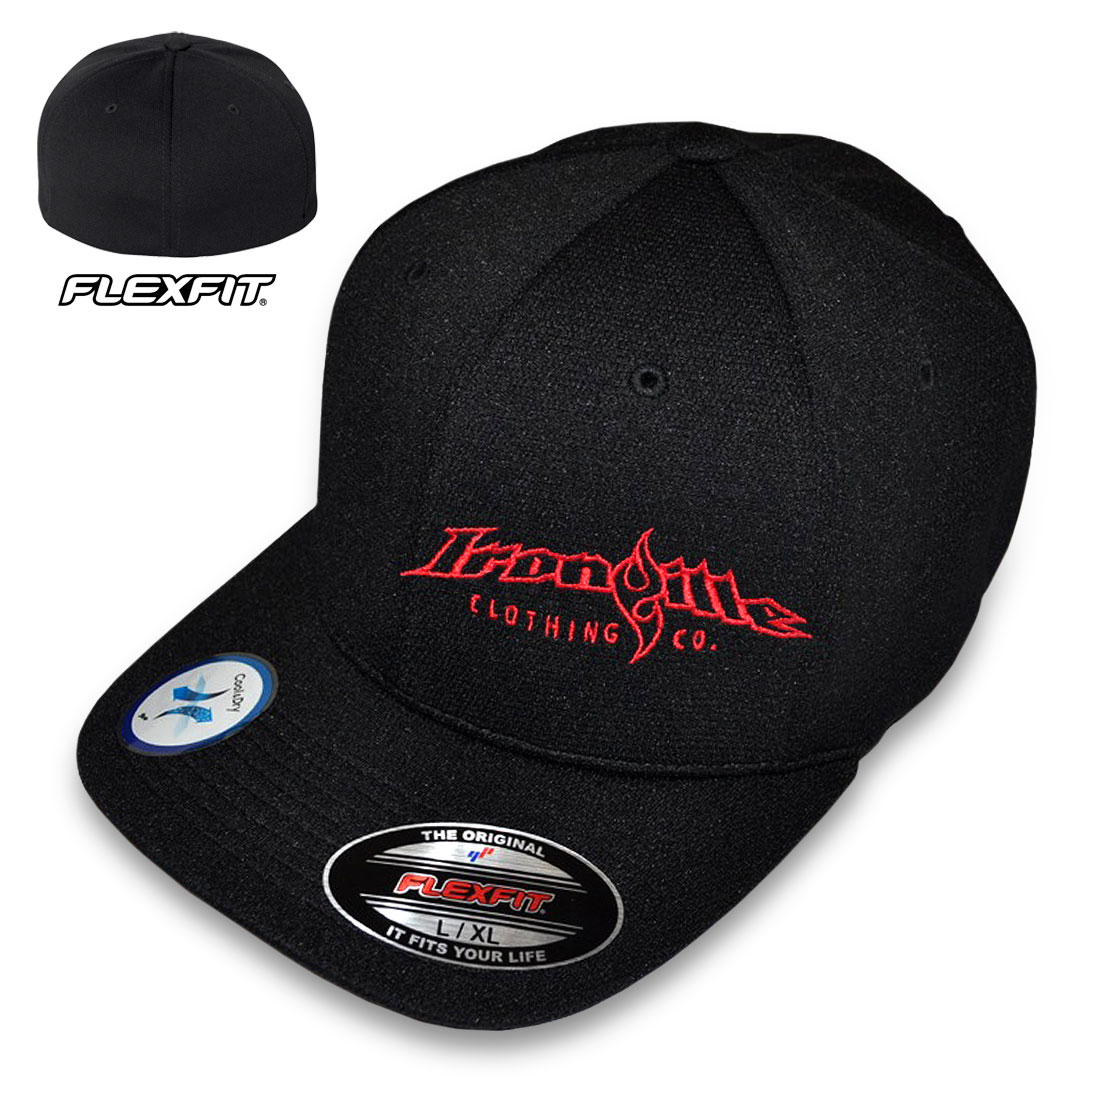 flexfit hats ironville flexfit cool and dry strongman hat black with horizontal logo NQXQTXK